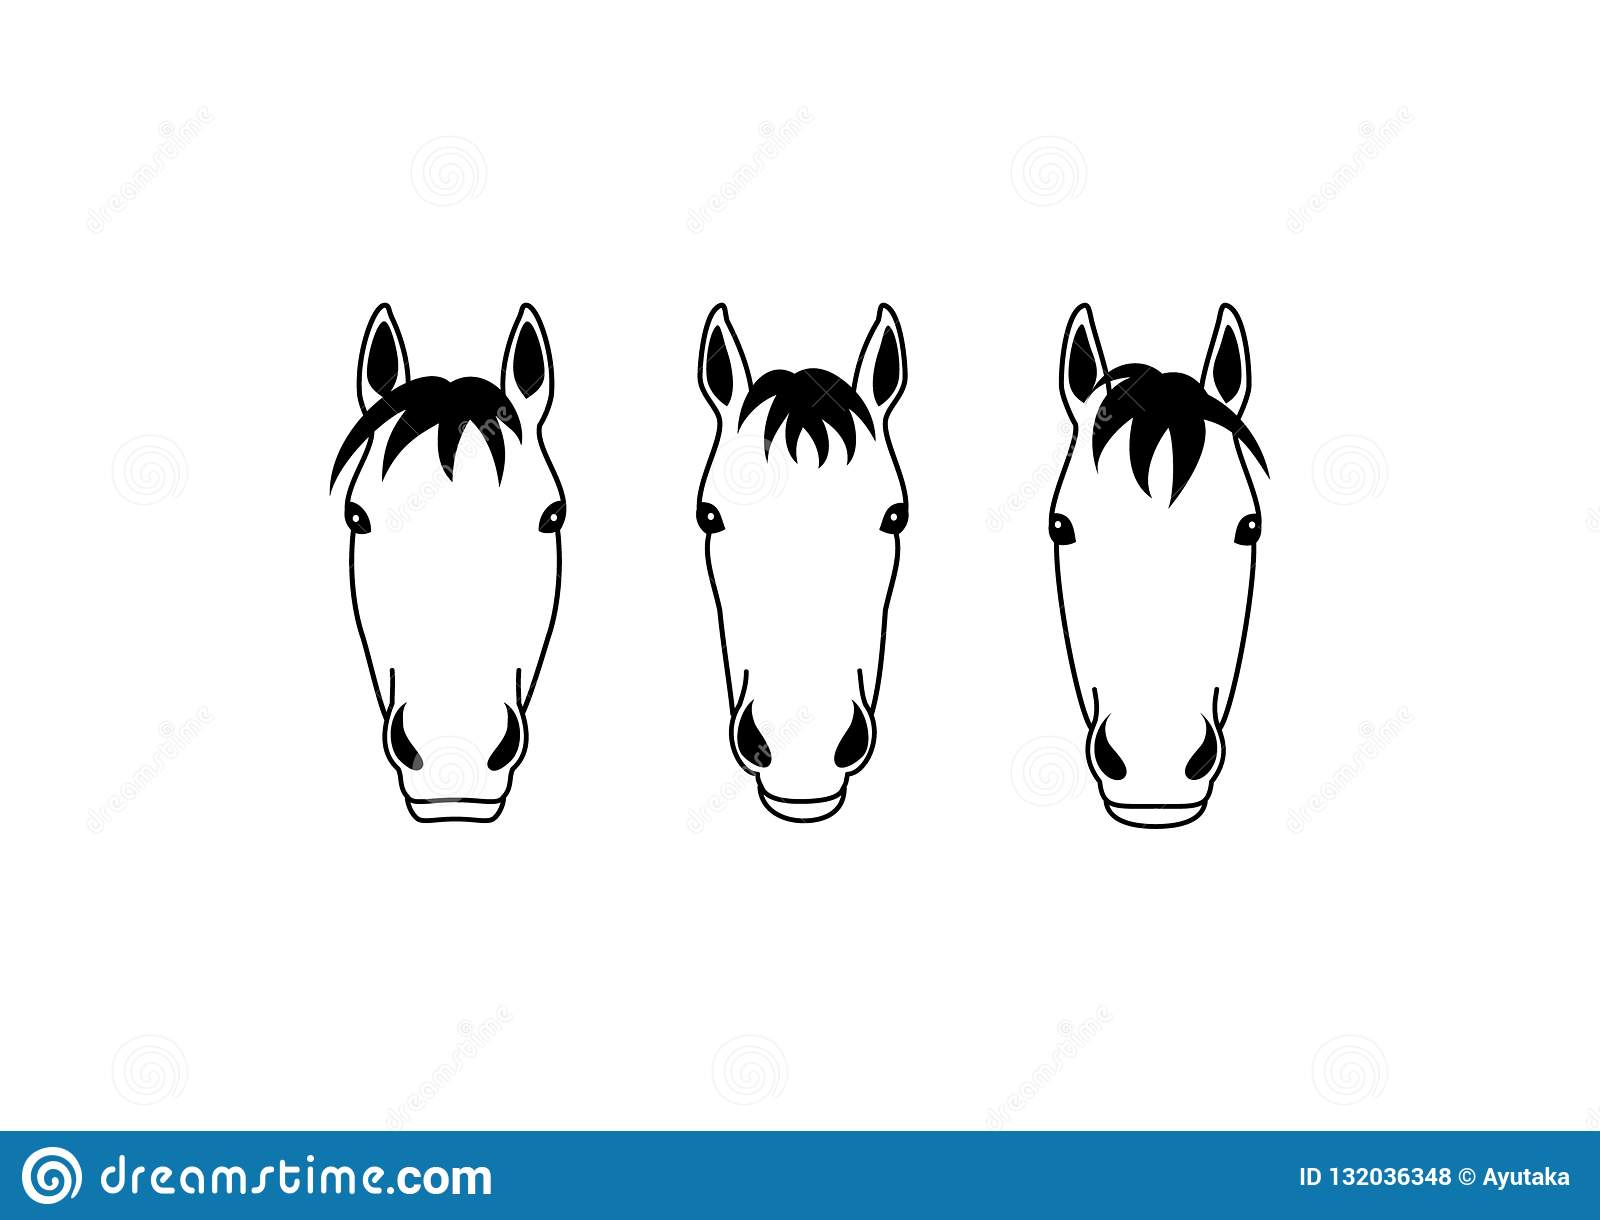 Horse Heads Group Design Stock Vector Illustration Of Head 132036348